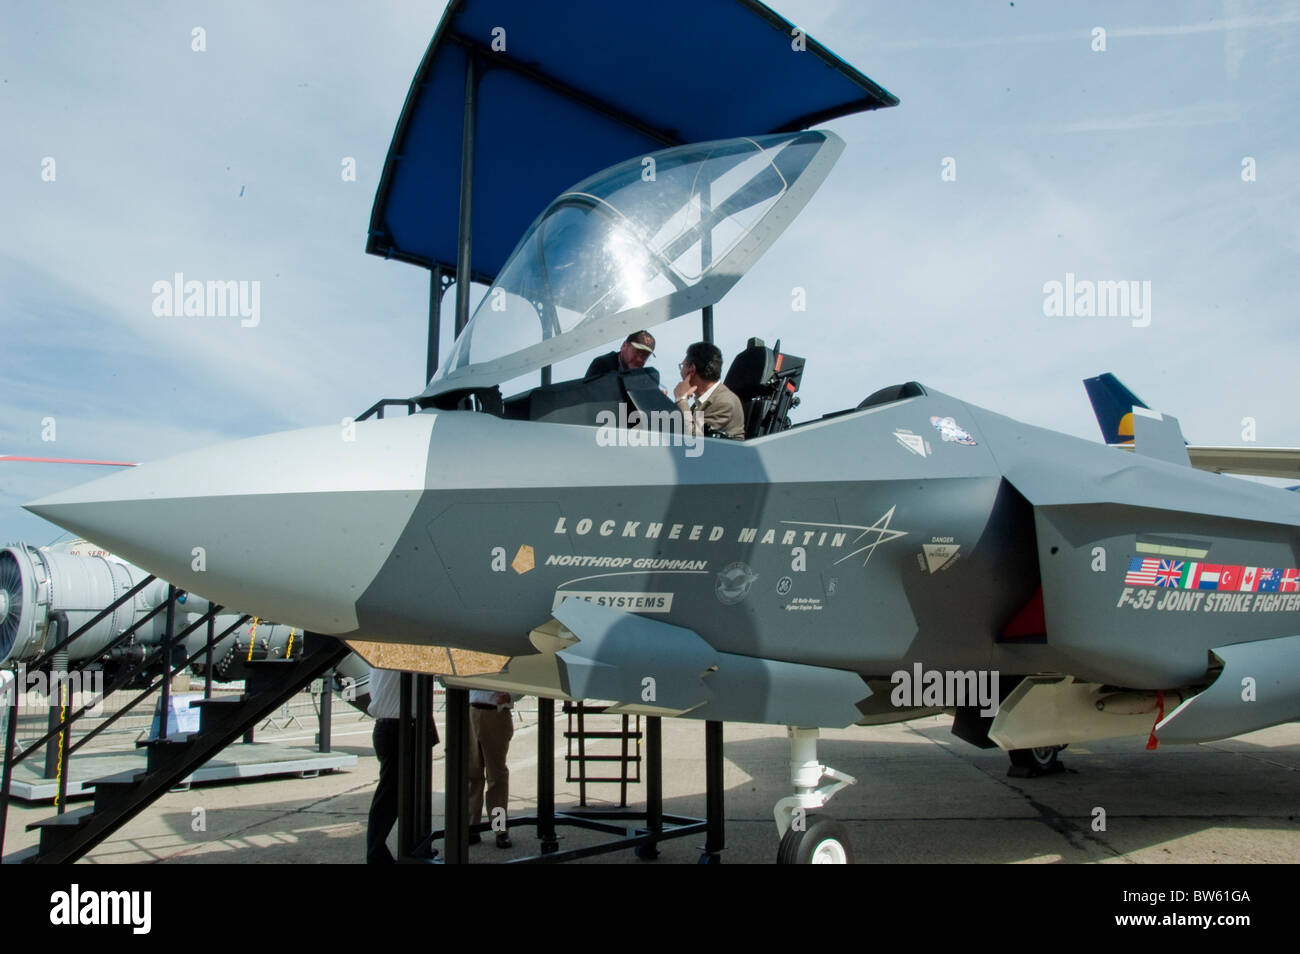 Paris, Fra-nce, Public Events, Businessmen at Paris Air Show at the Bourget Airport, Looking at 'Lockheed Martin' - Stock Image